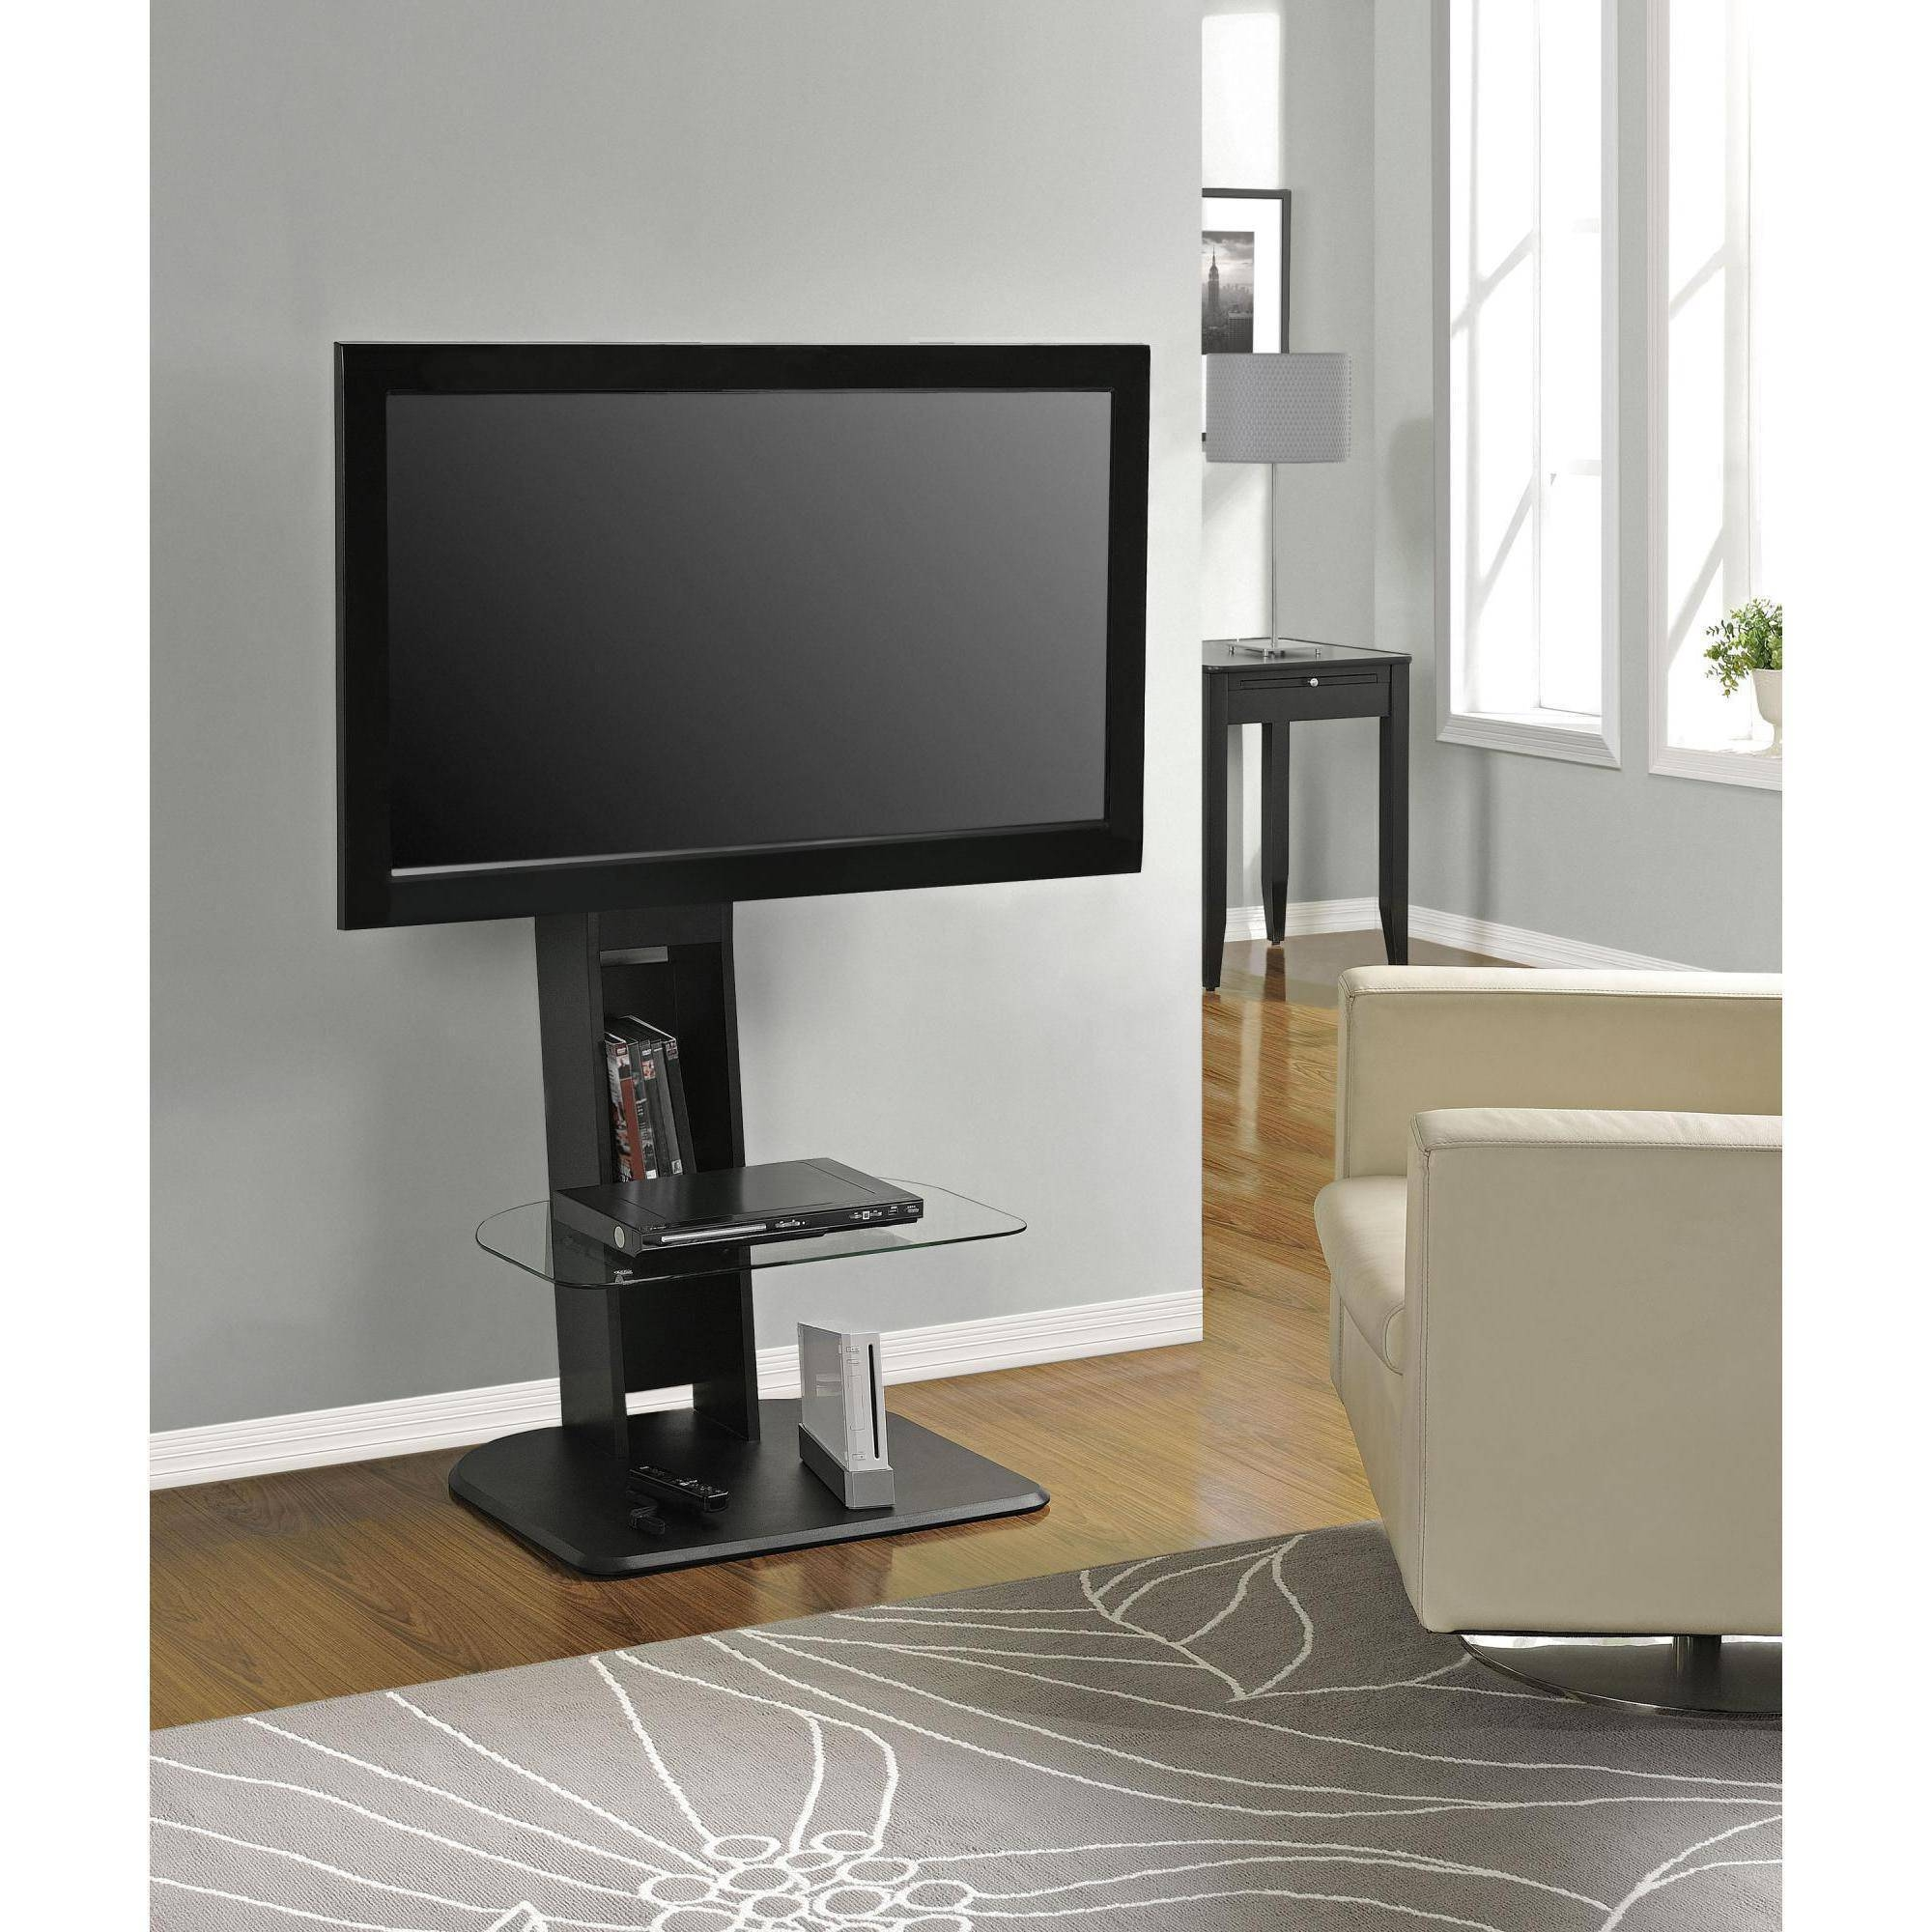 Tv Stands & Entertainment Centers - Walmart with Tv Stands For 70 Inch Tvs (Image 13 of 15)